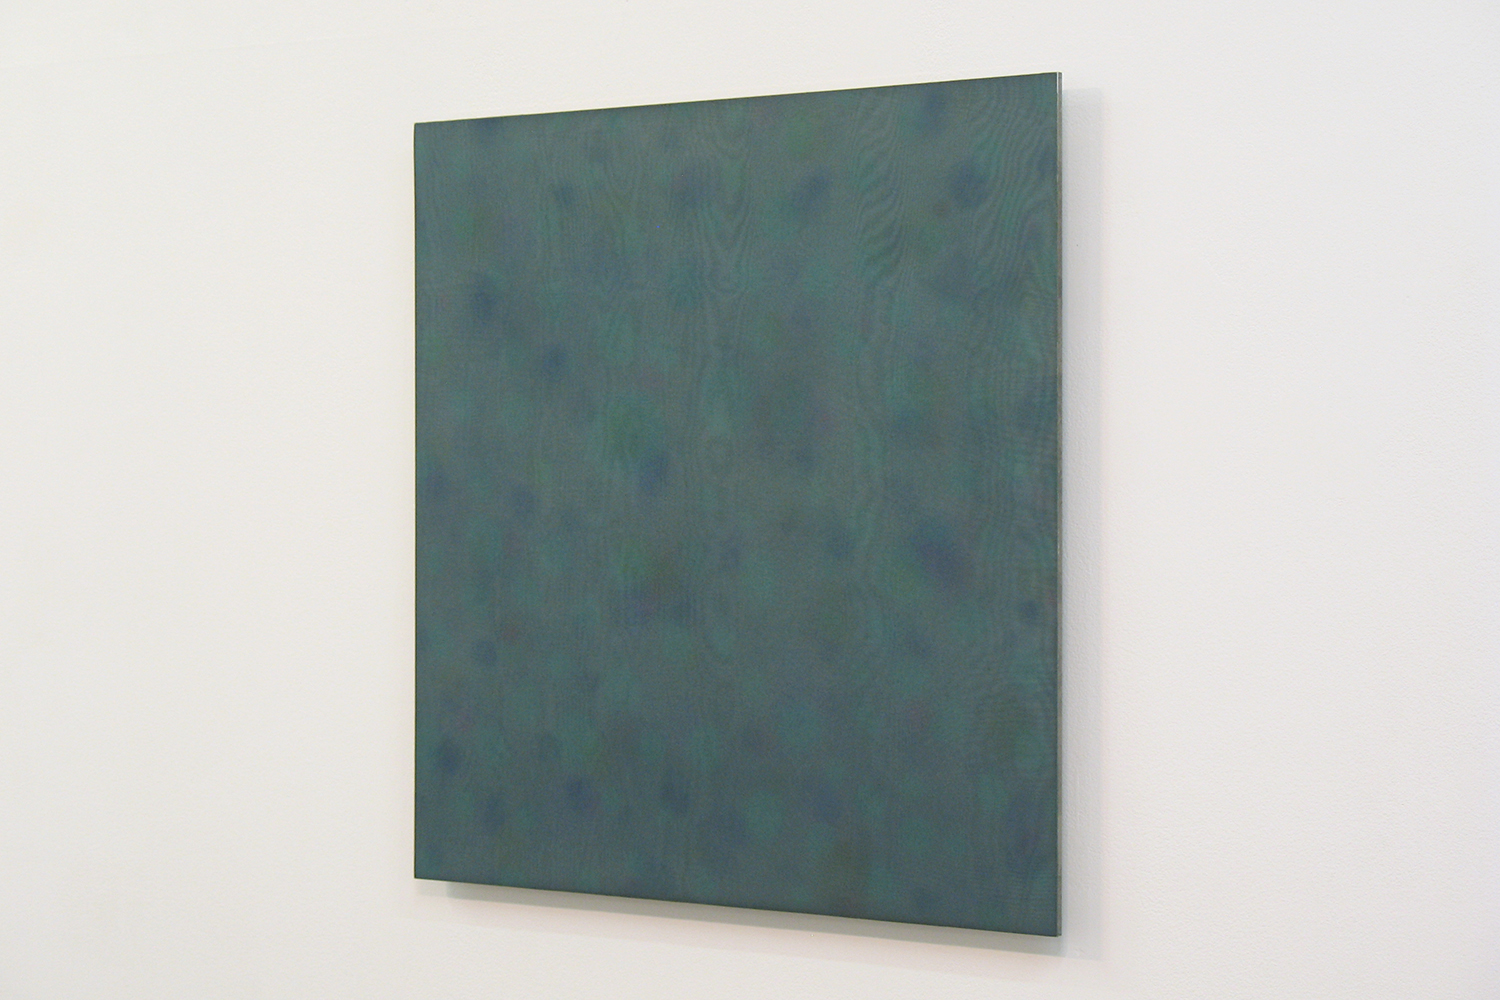 Untitled MV|Acrylic board, stainless steel sheet, glass organdy, acrylic paint|60 x 60 cm|2011